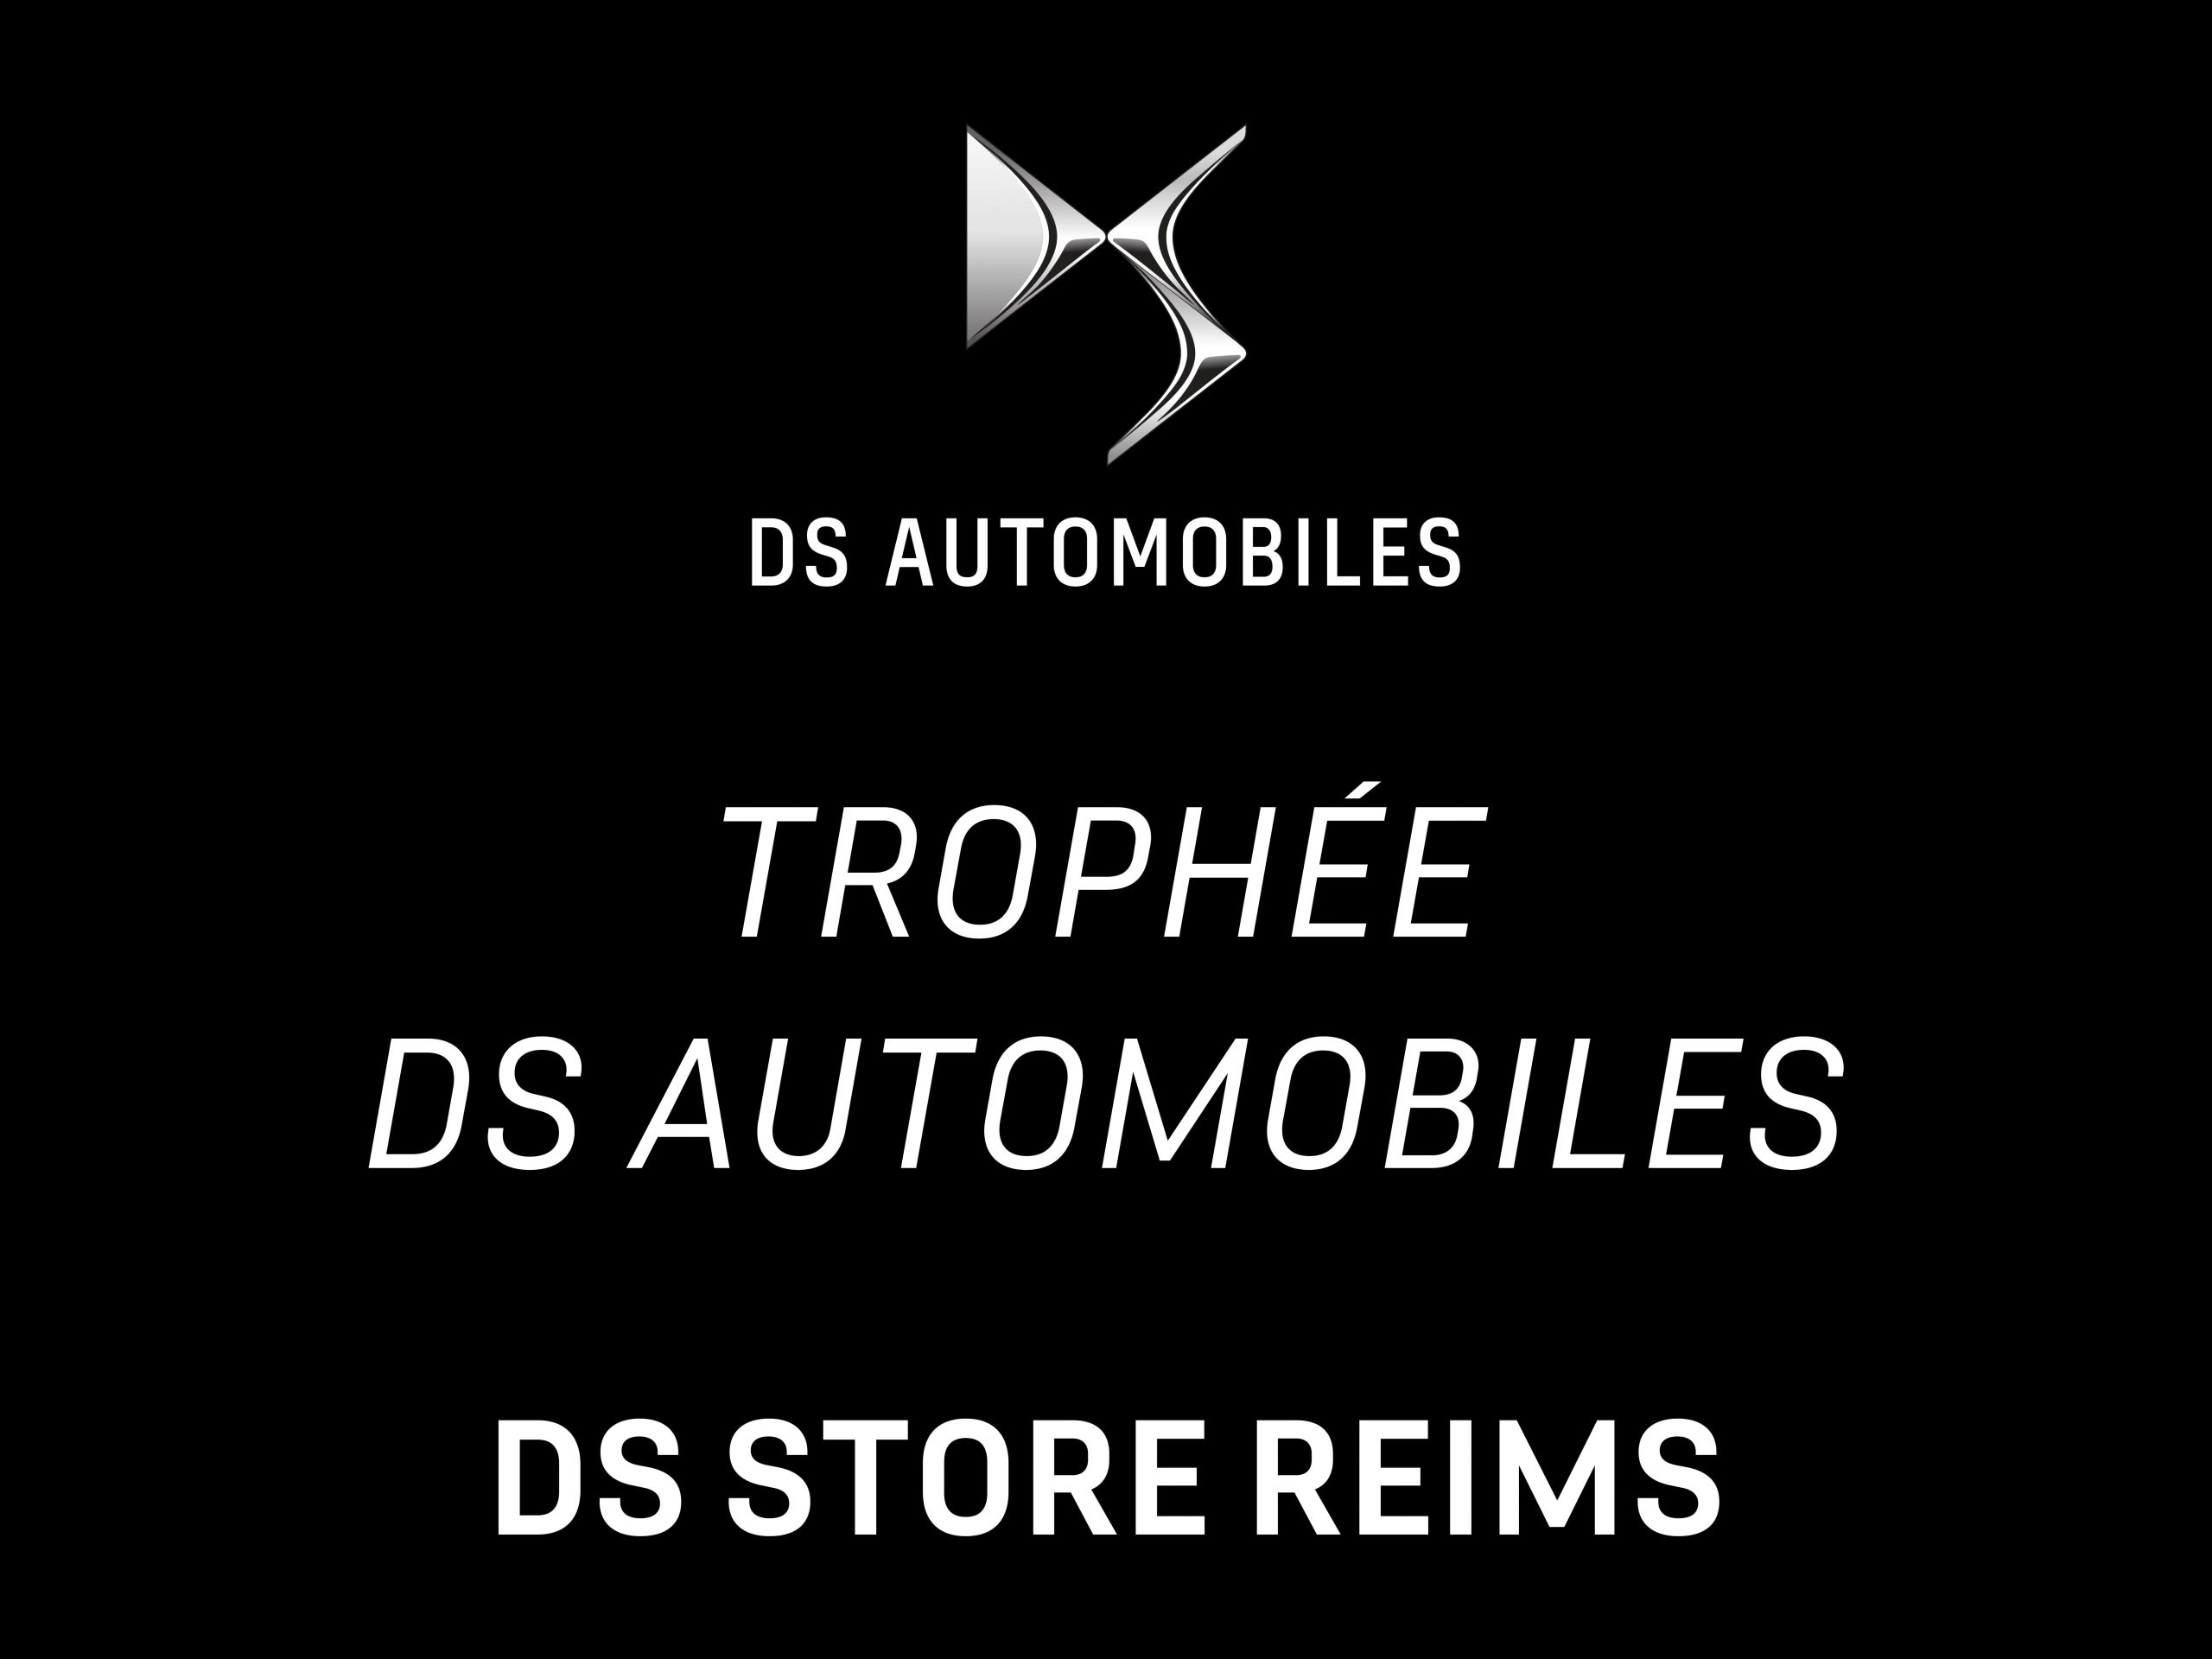 DS STORE REIMS